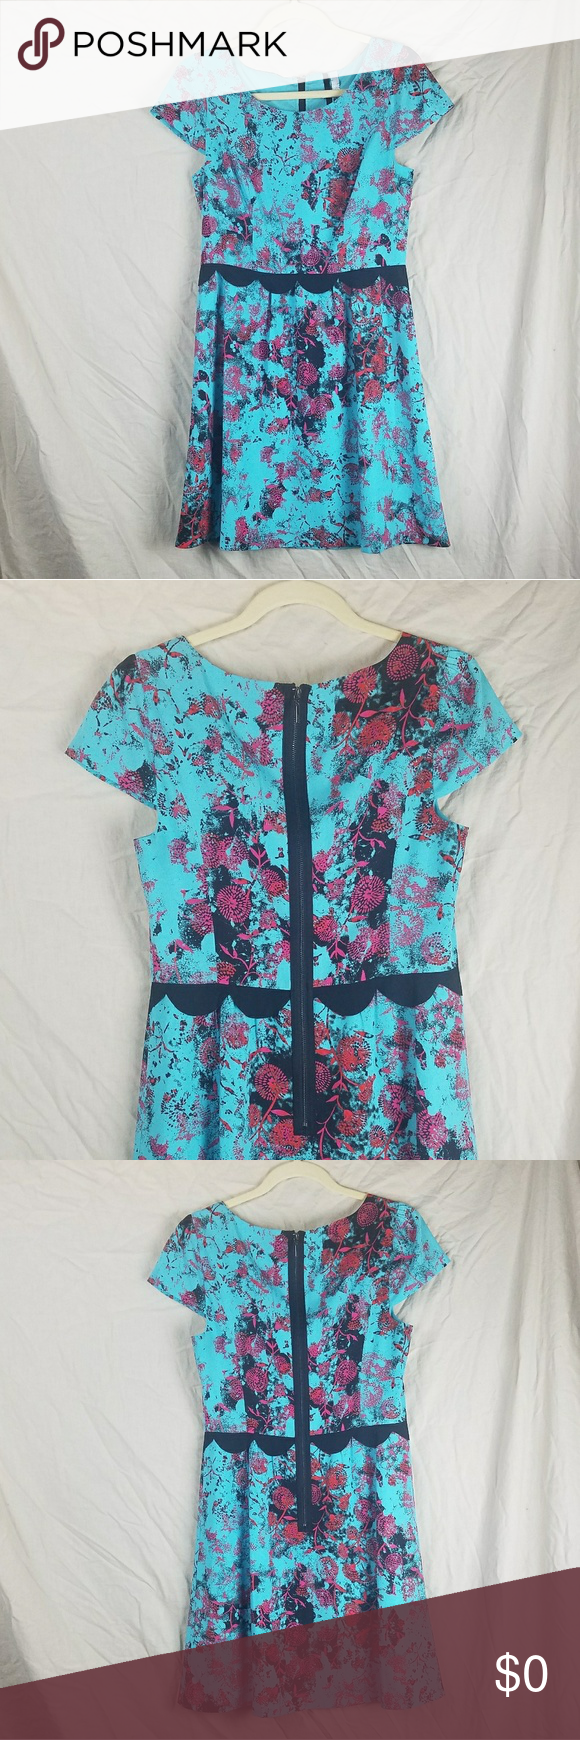 870765e7b98f3a Kensie Blue dress with red floral print